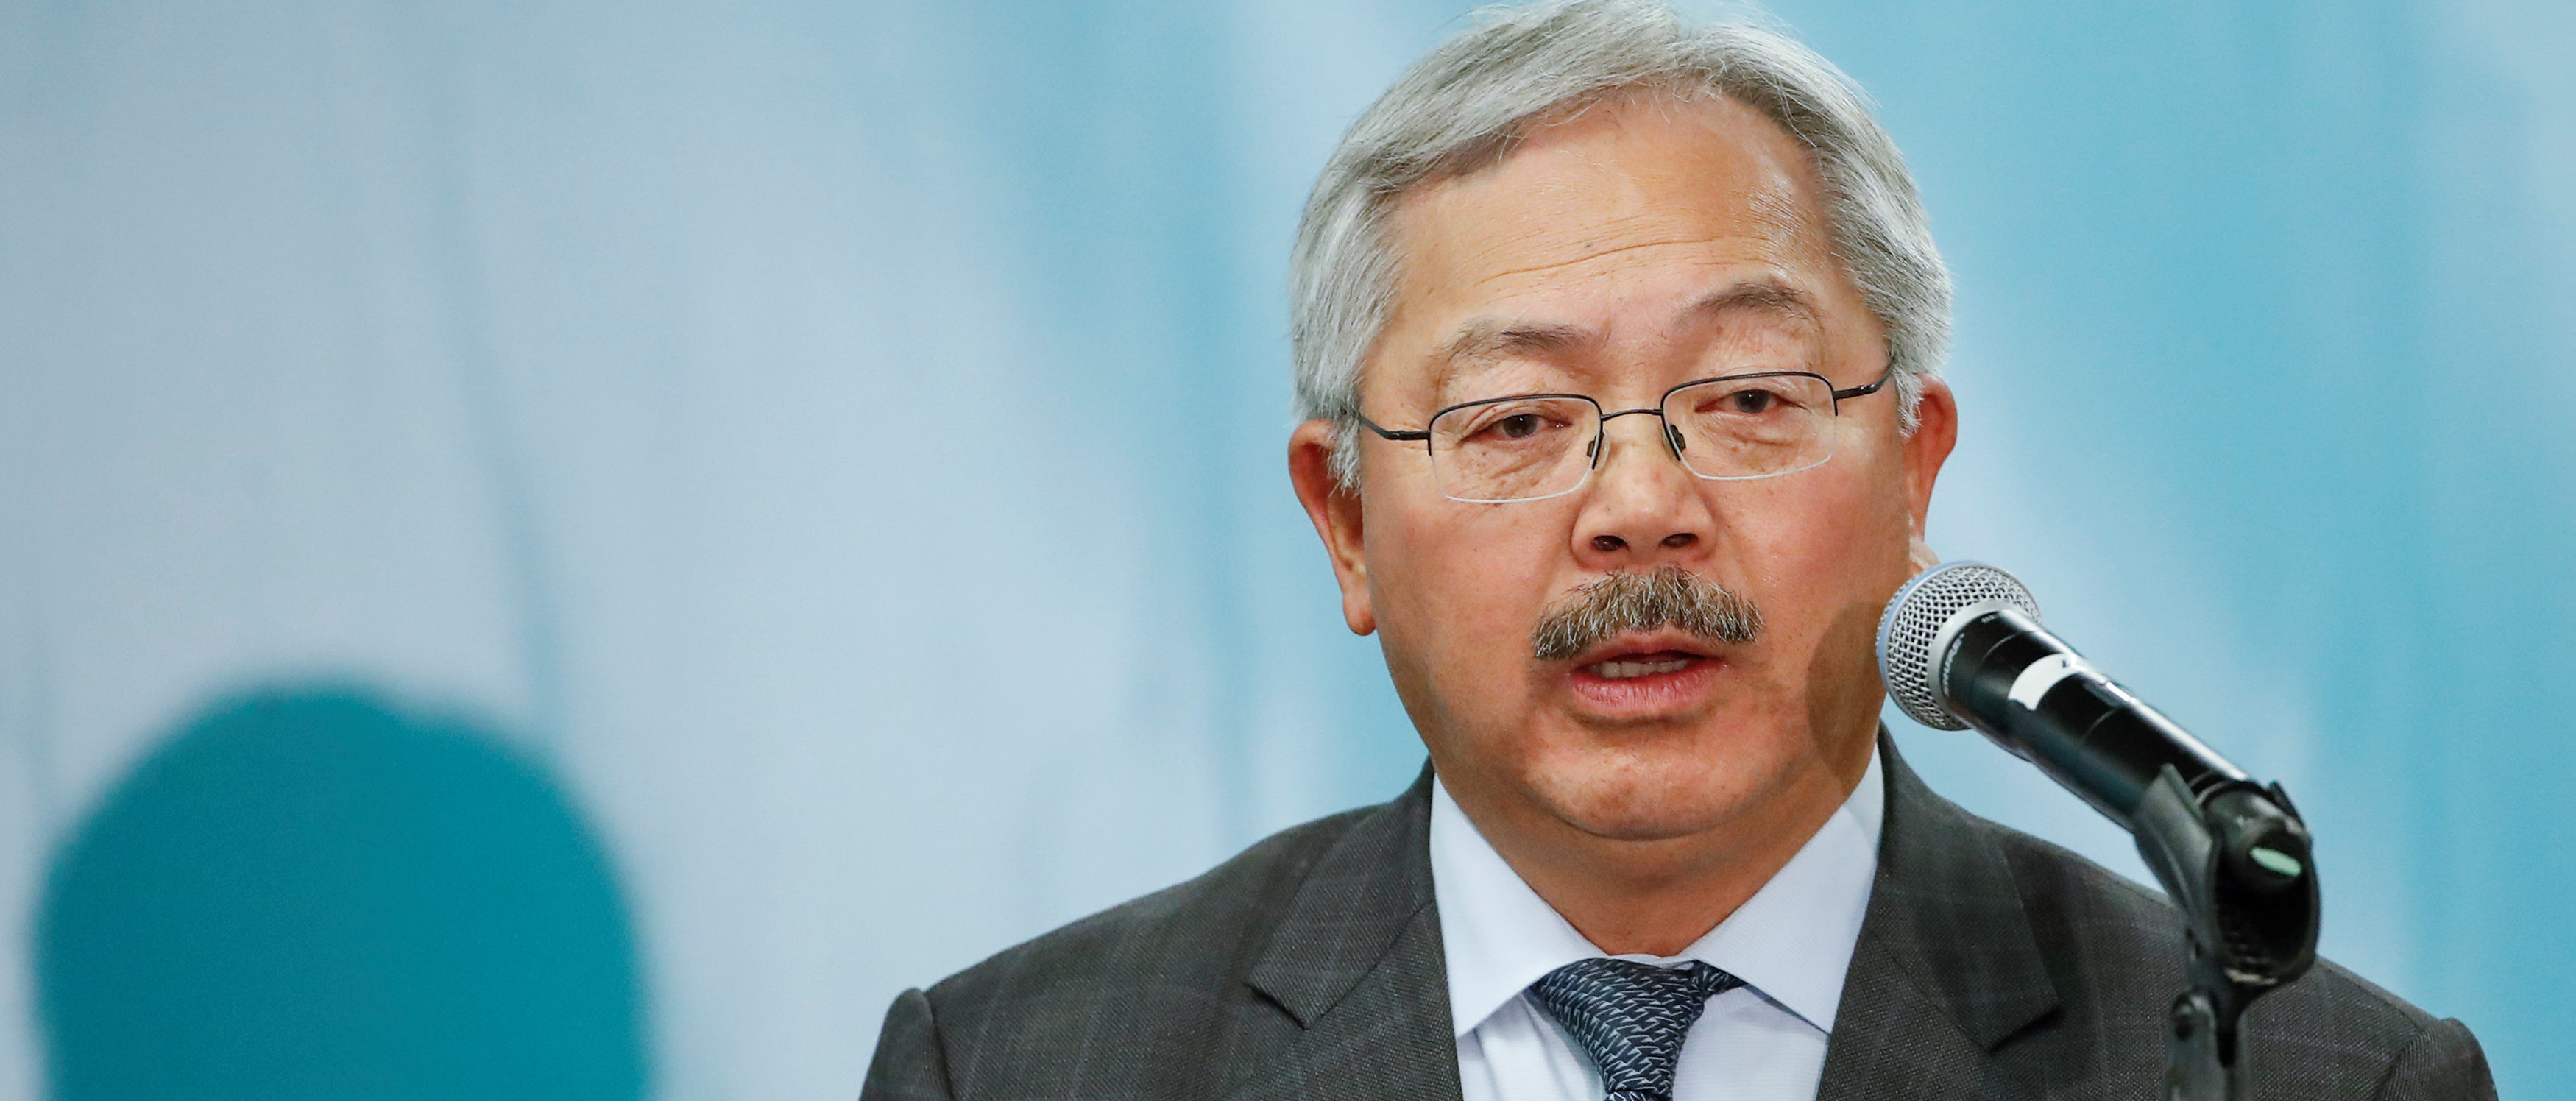 San Francisco Mayor Ed Lee speaks during the North American Climate Summit in Chicago, Illinois, U.S., December 5, 2017. Picture taken December 5, 2017. REUTERS/Kamil Krzaczynski | Climate Lawsuits Rely On Flawed Study